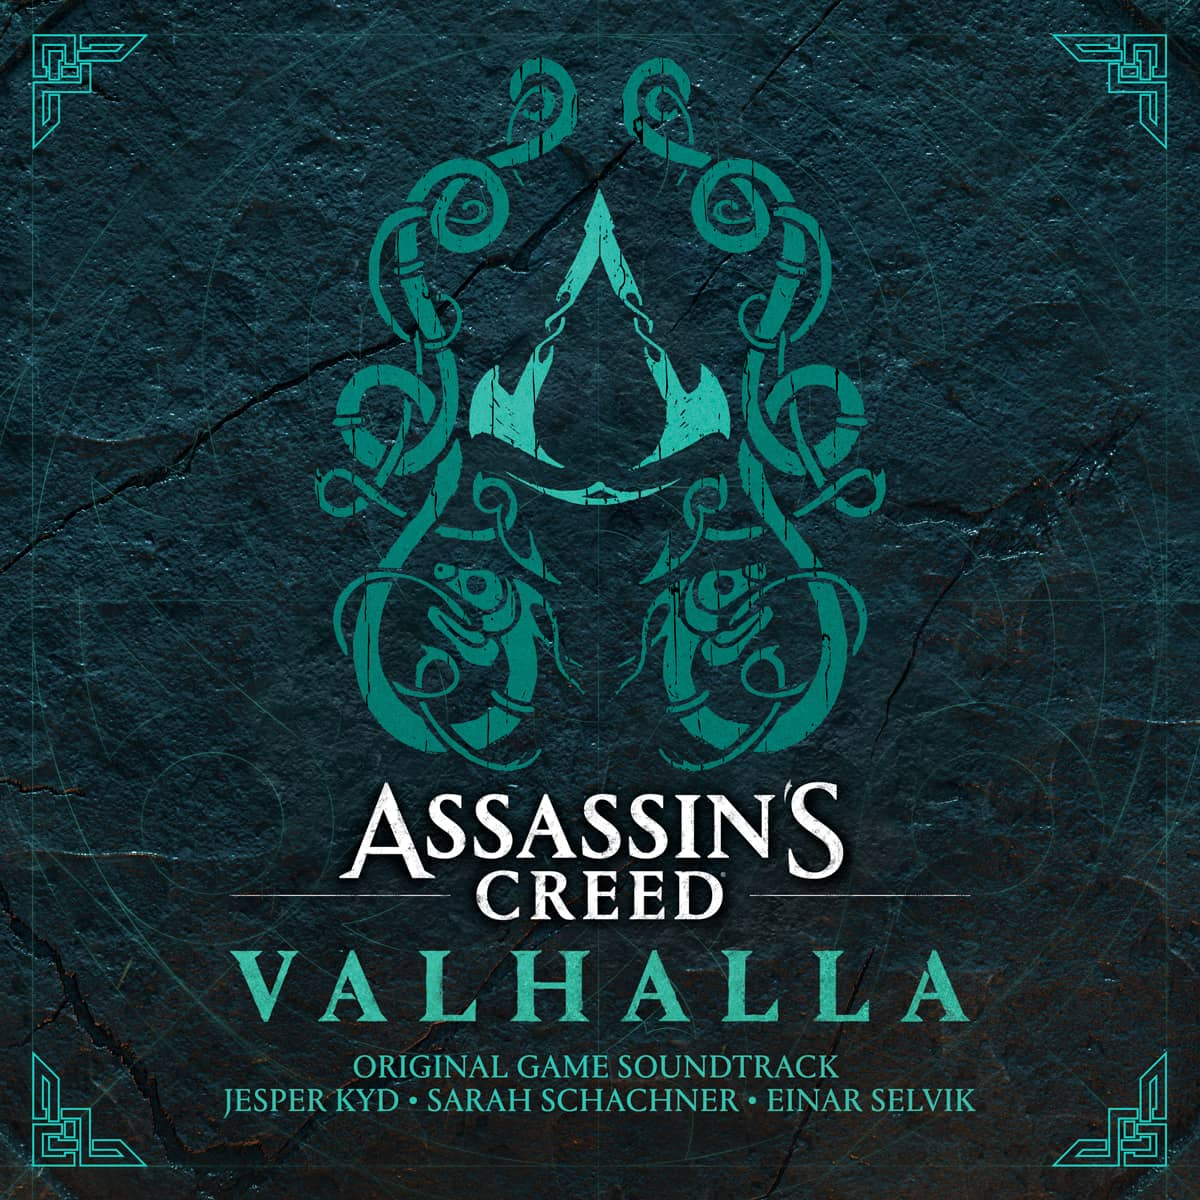 assassins-creed-valhalla-original-game-soundtrack_1200